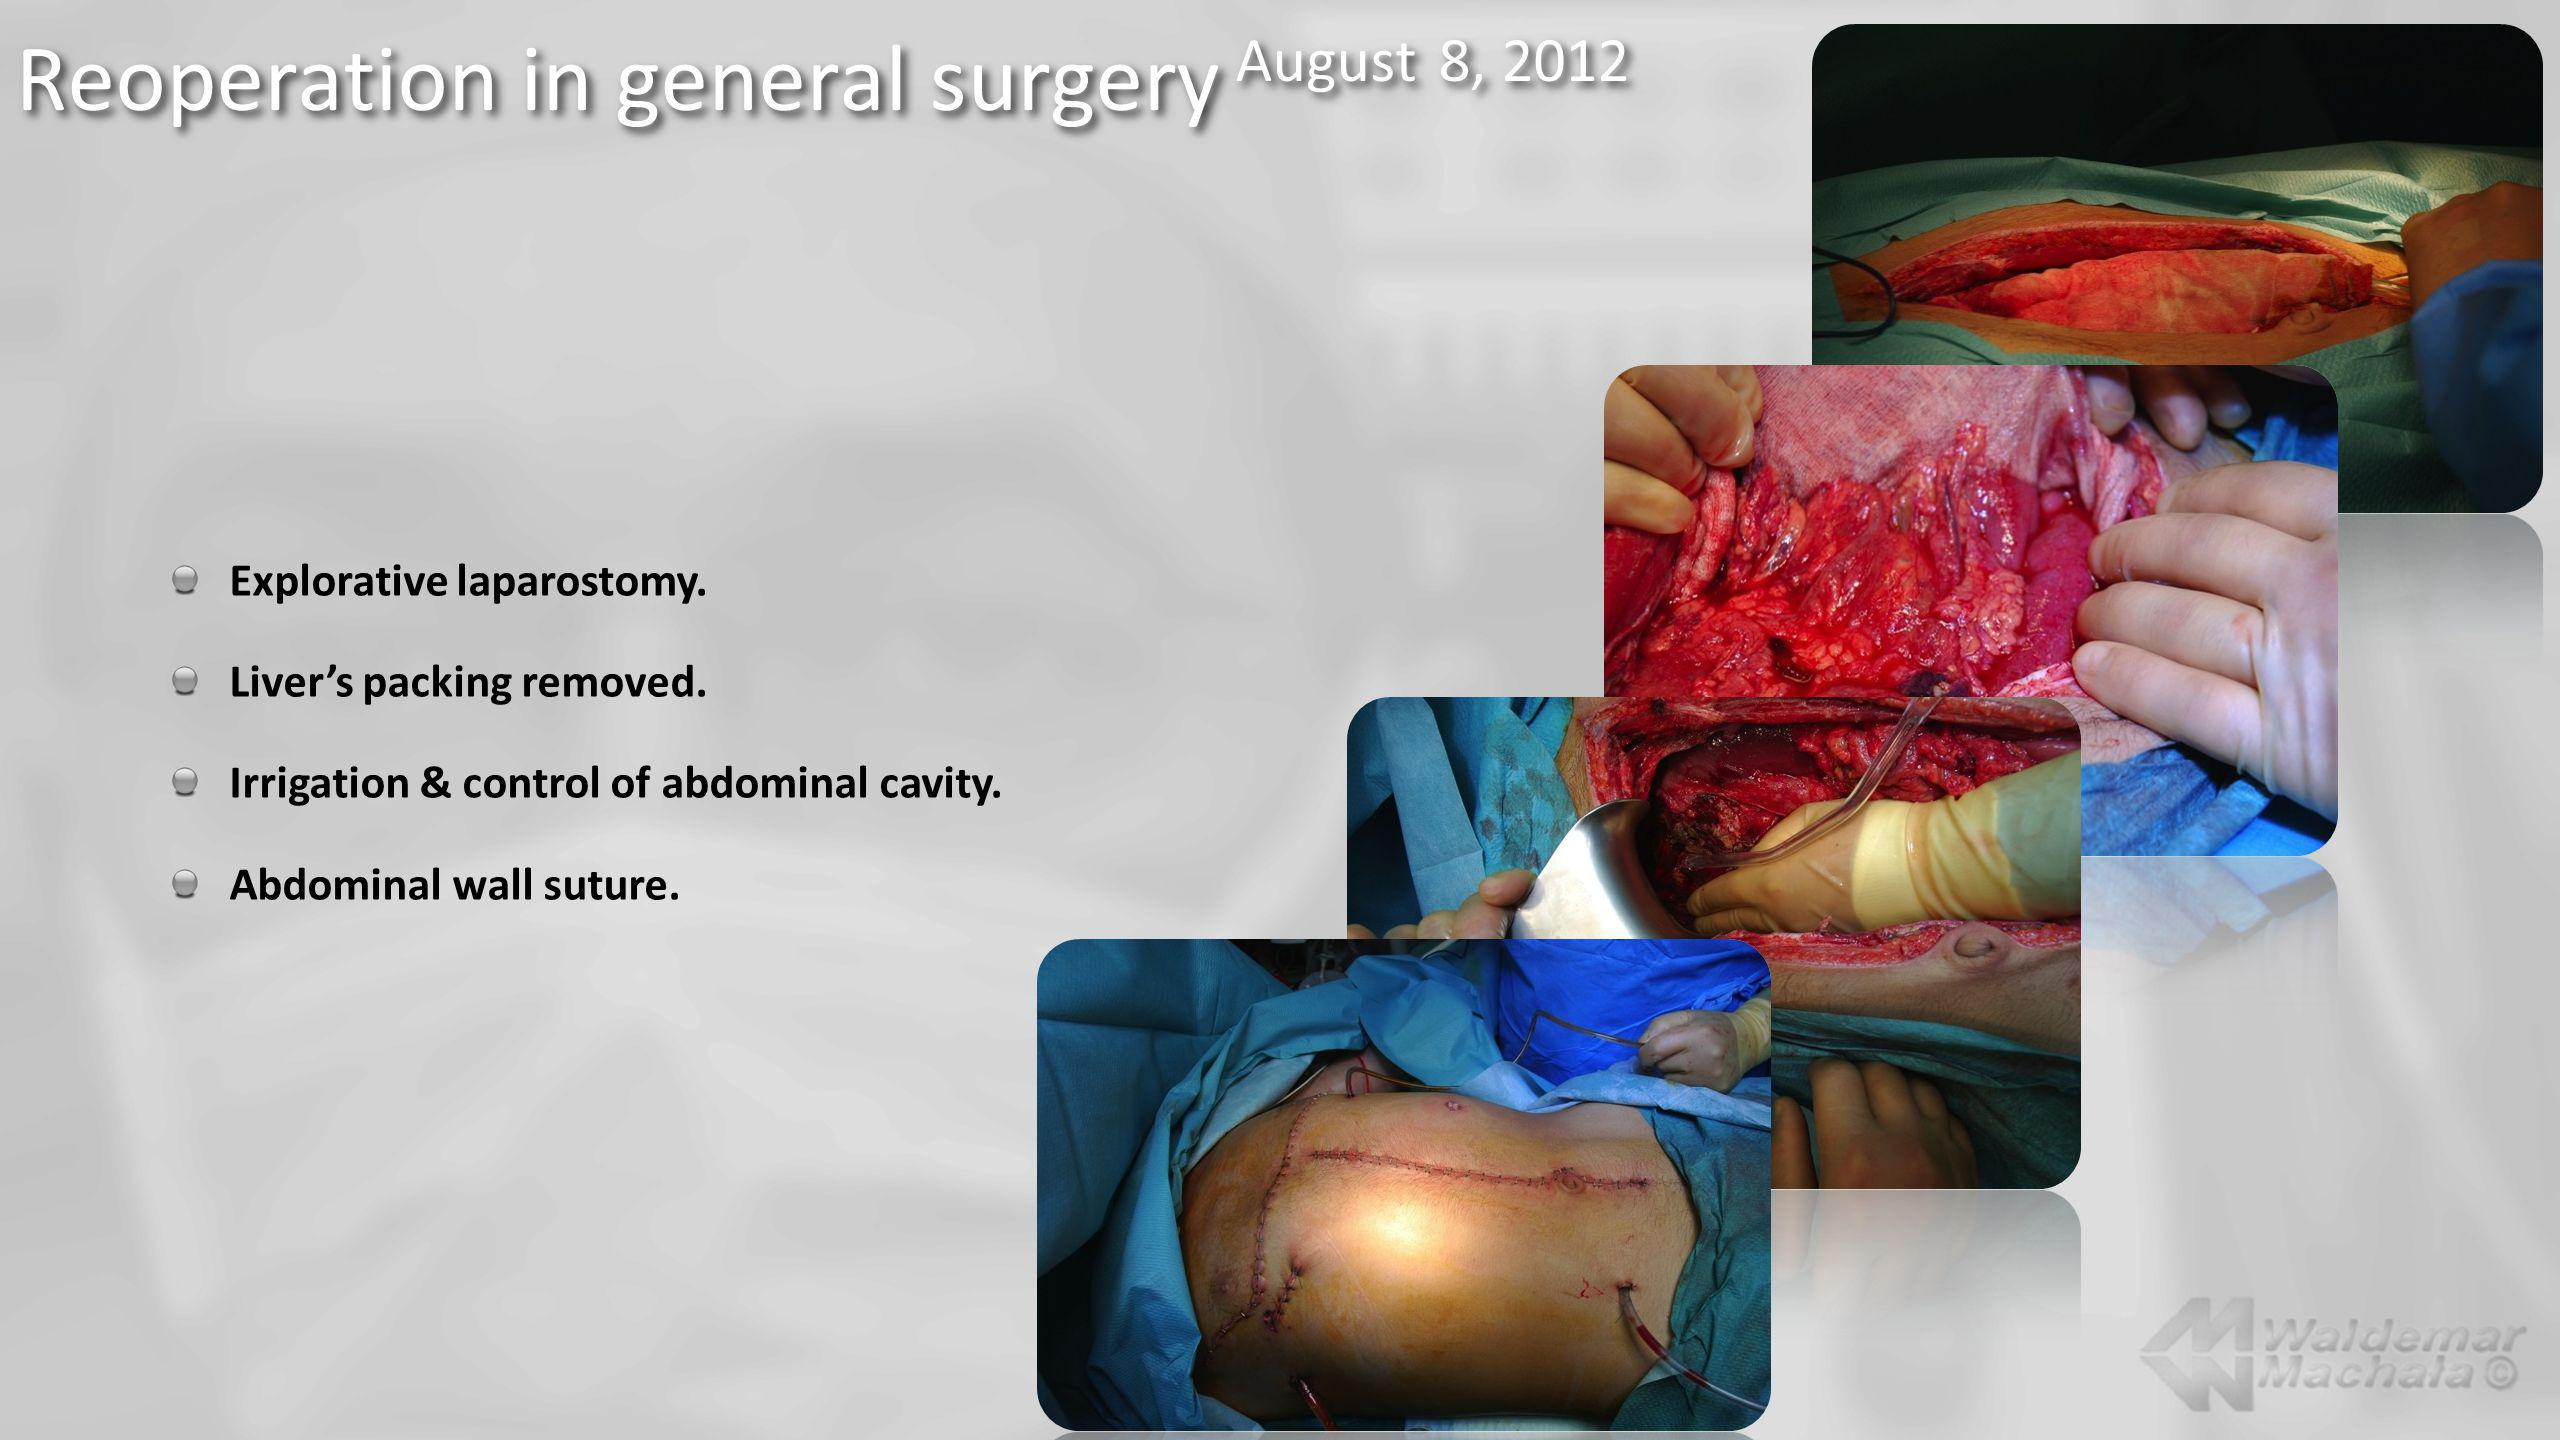 Explorative laparostomy. Livers packing removed. Irrigation & control of abdominal cavity. Abdominal wall suture.